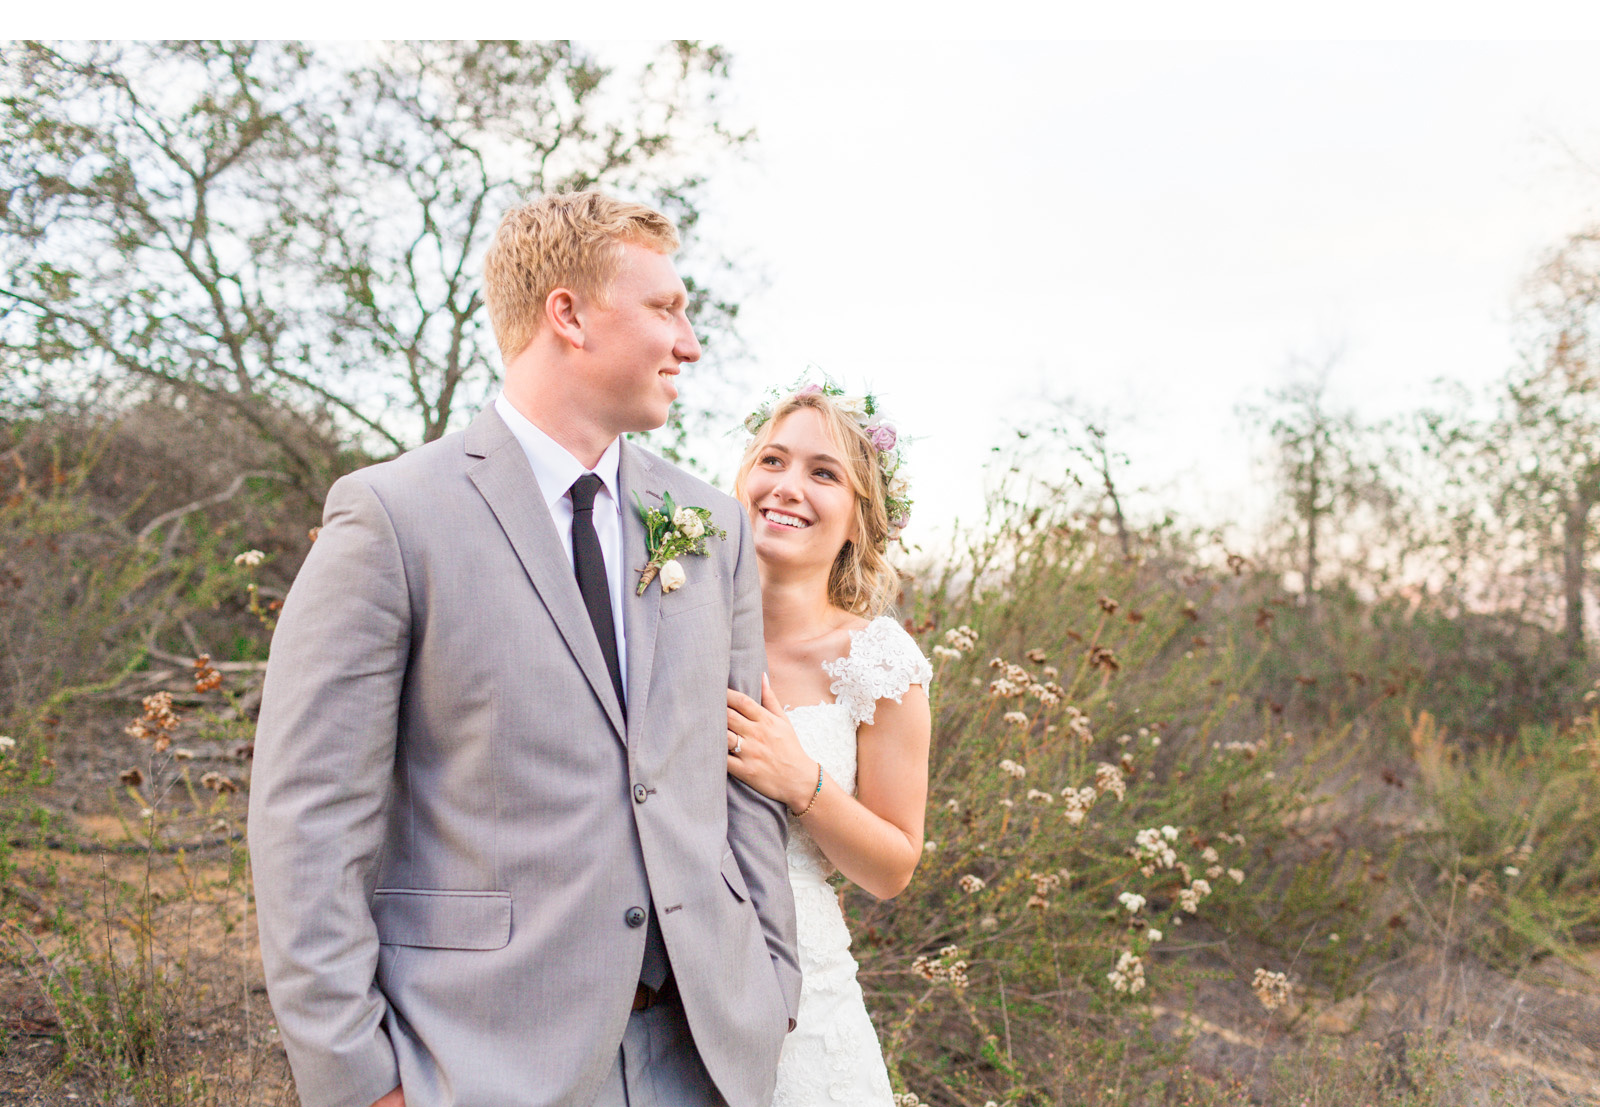 San-Diego-Wedding---N-Schutt-Photography_03.jpg